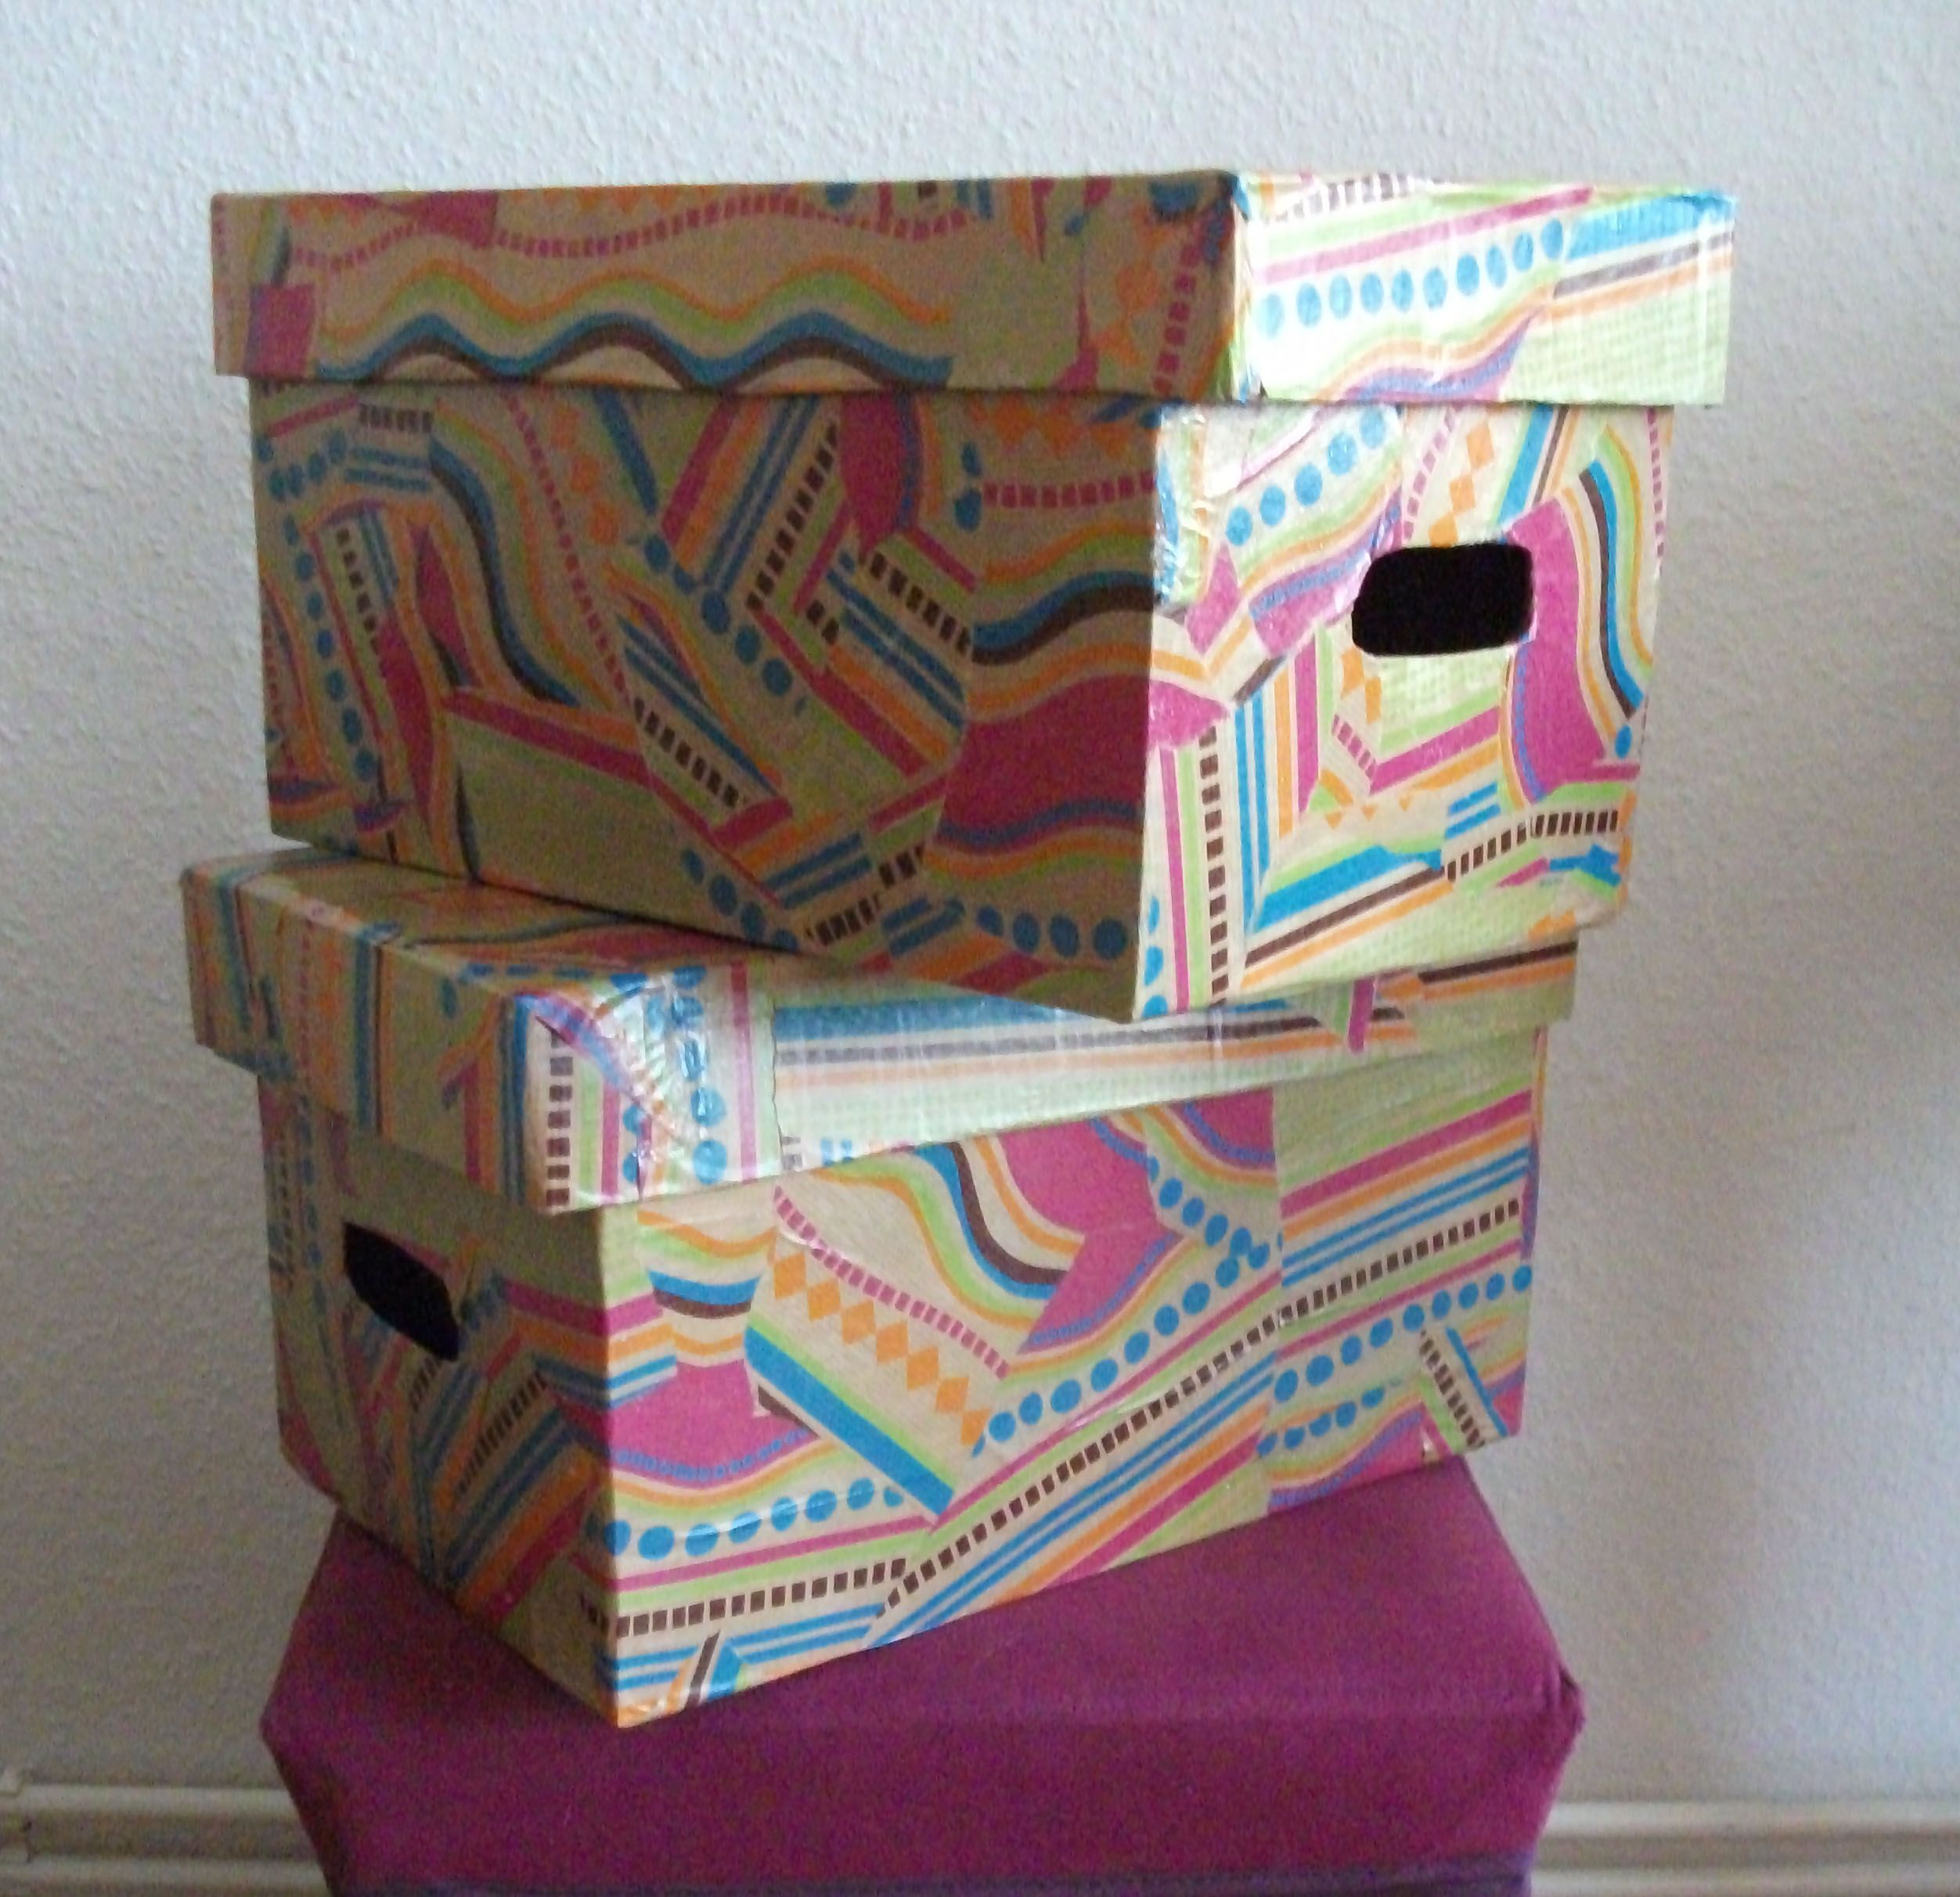 Bulky Diaper Boxes To Funky Storage An Upcycling Tutorial By Sheri